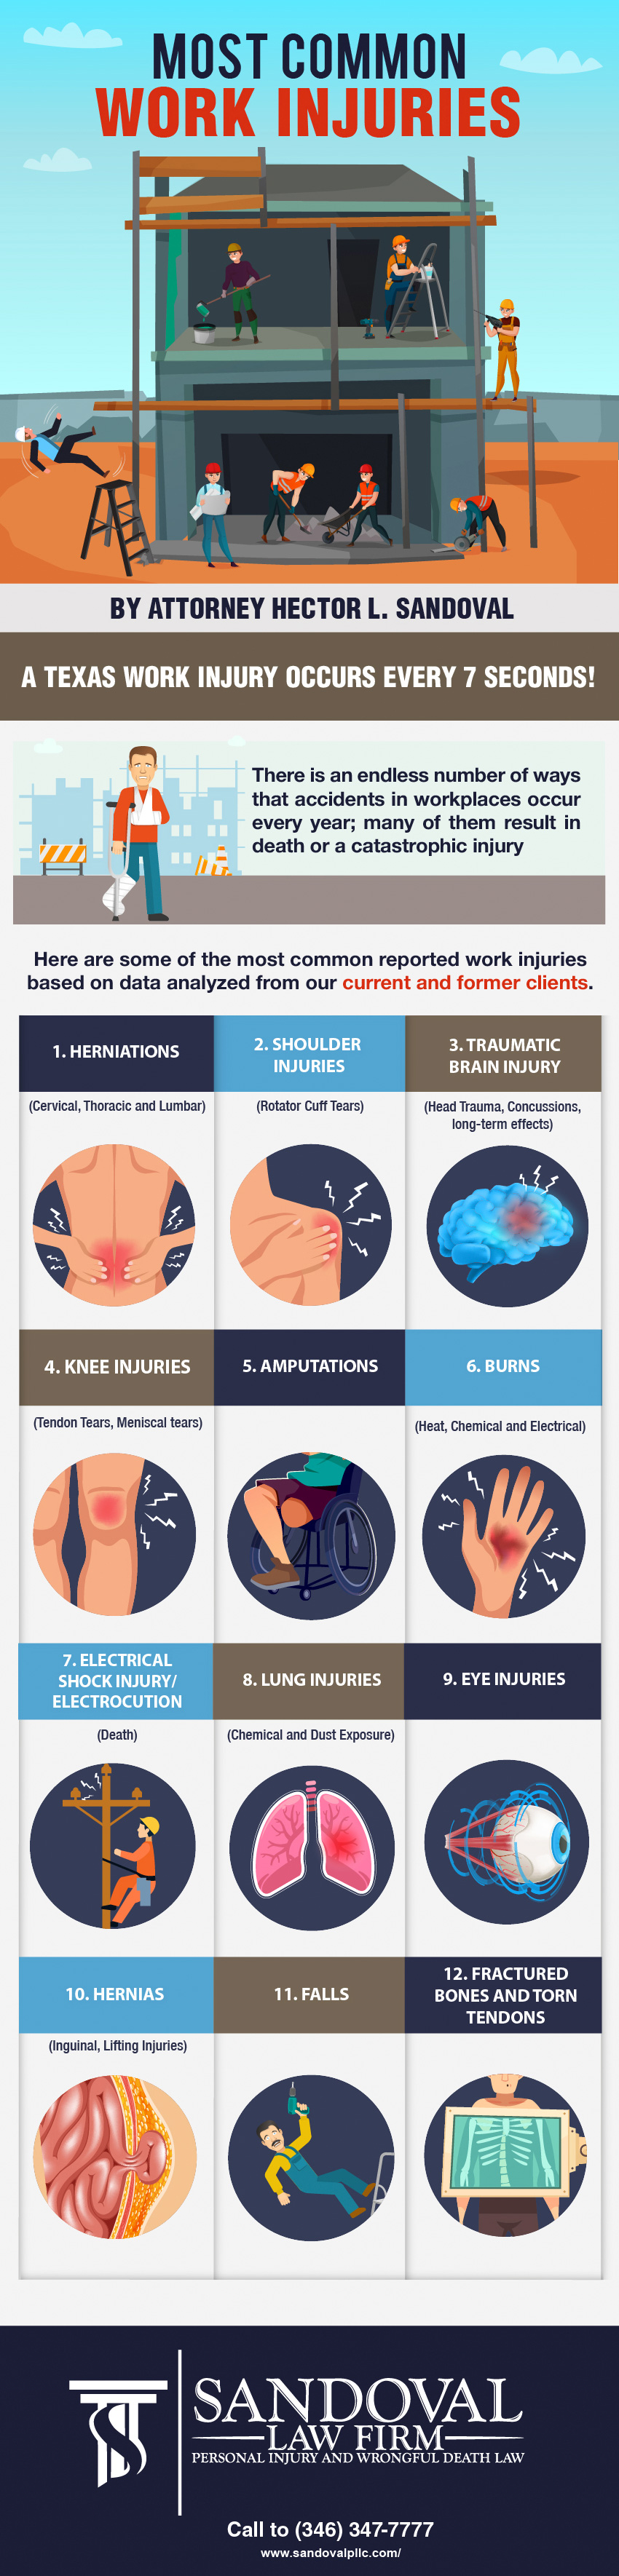 Most Common Work Injuries